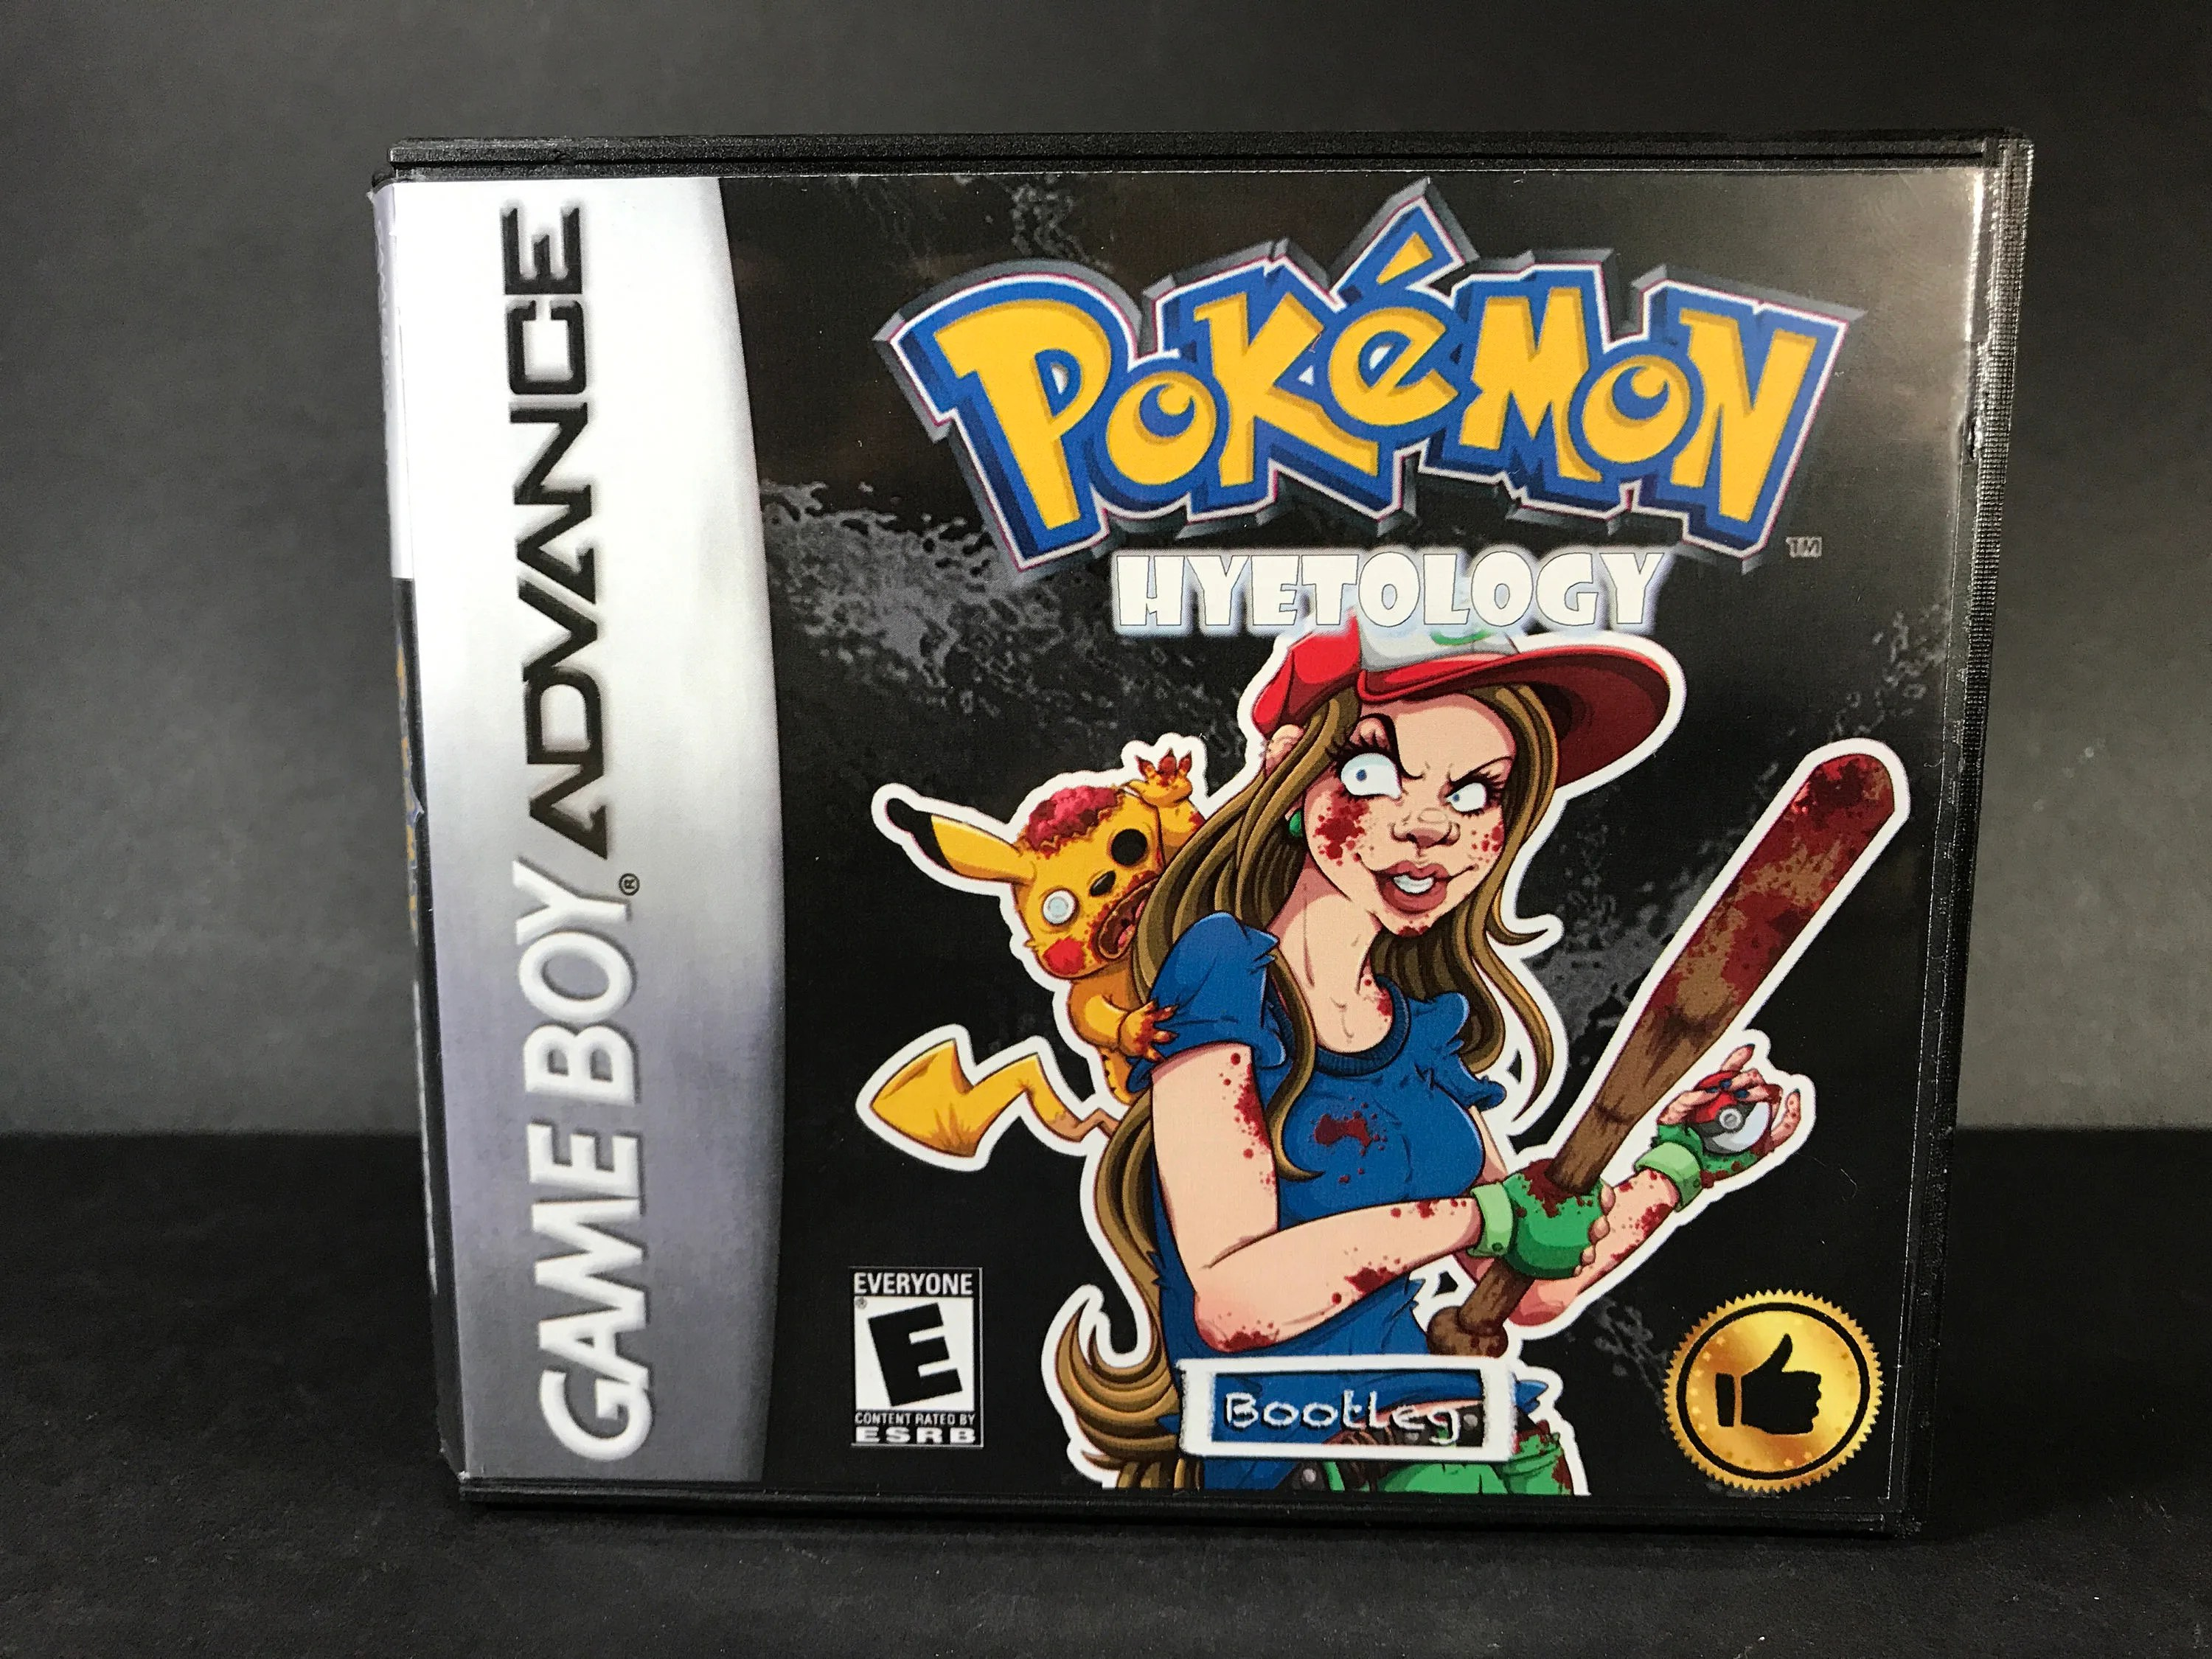 Pokemon Outlaw Rom Hack Fan Made Game Gameboy Advance Gba